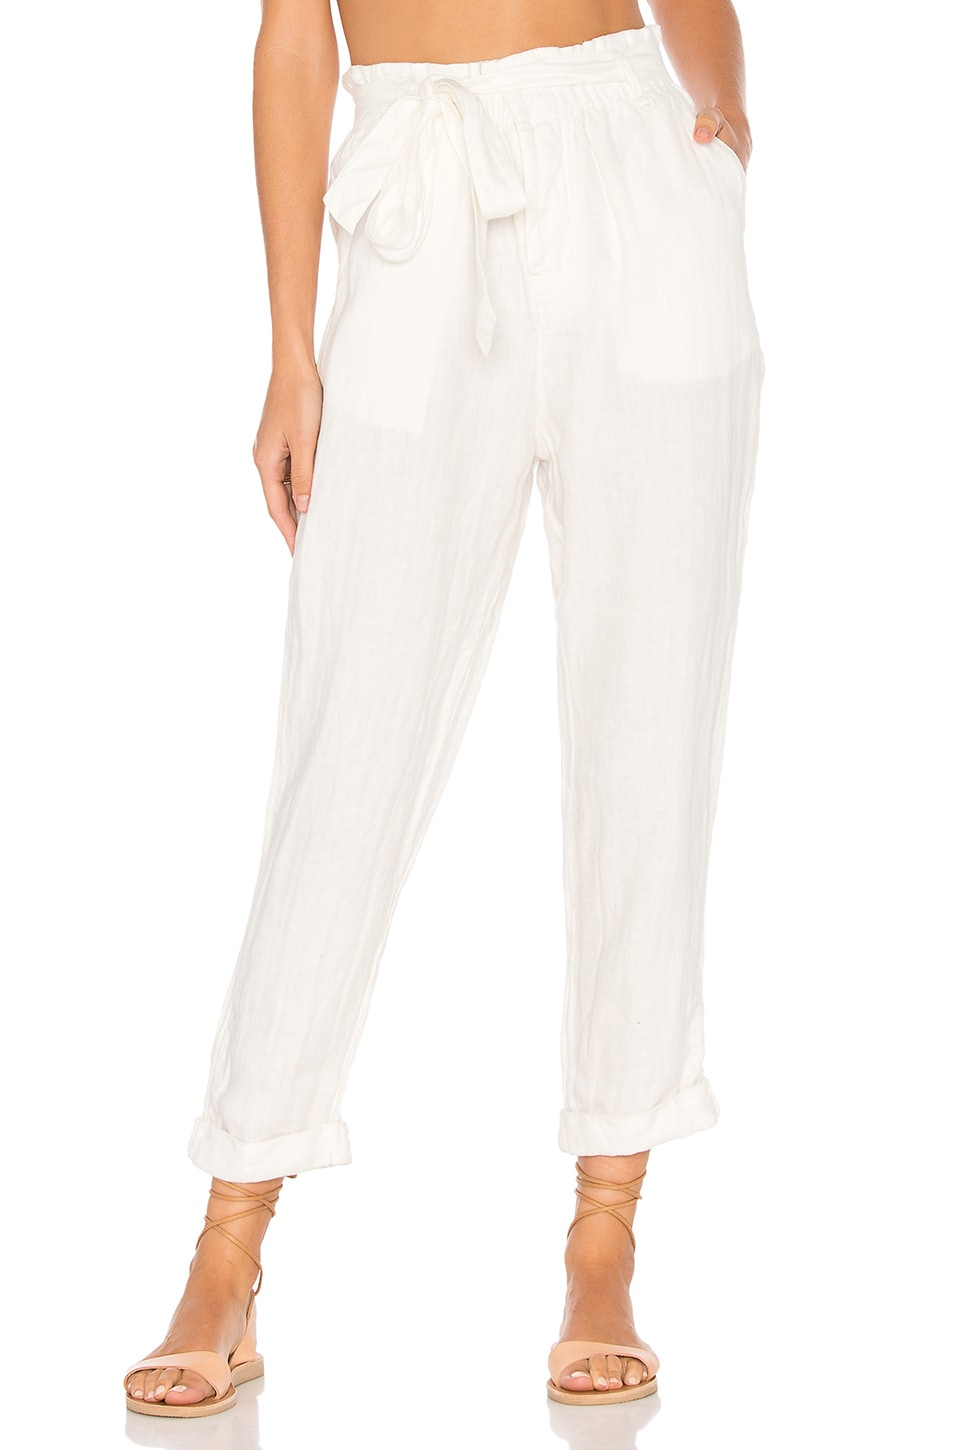 Free People Paper Bag Pant in Neutral